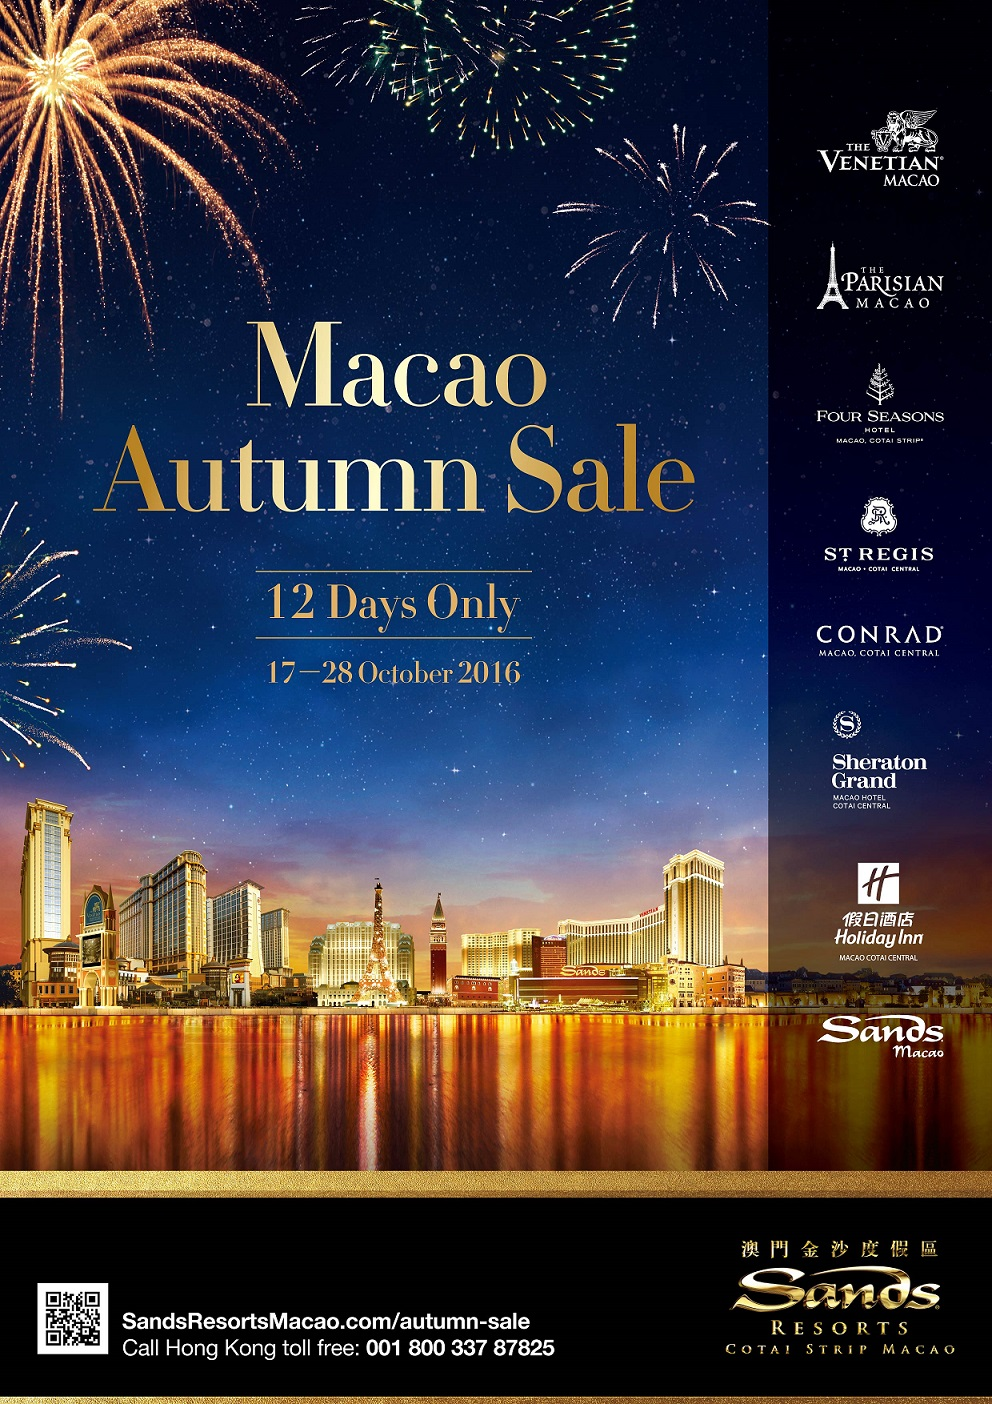 Sands Resorts Cotai Strip Macao Autumn Sale